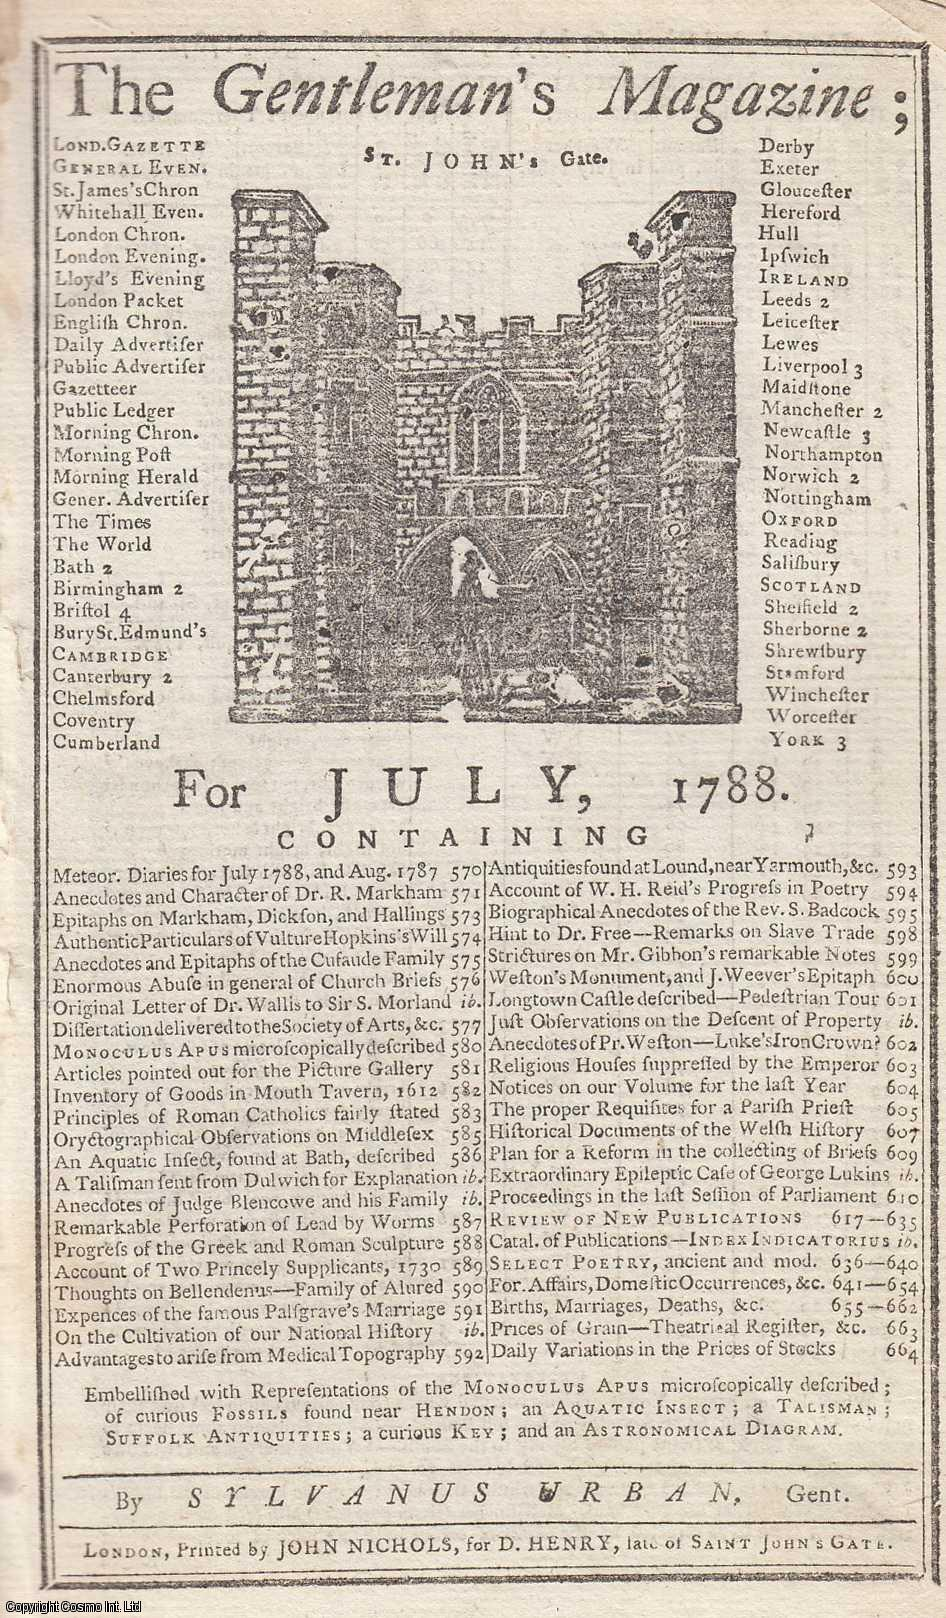 The Gentleman's Magazine for July 1788.  FEATURING Three Plates, including Monoculus Apus, the insect; Aquatic Insects; Suffolk Antiquities, etc., Urban, Sylvanus.